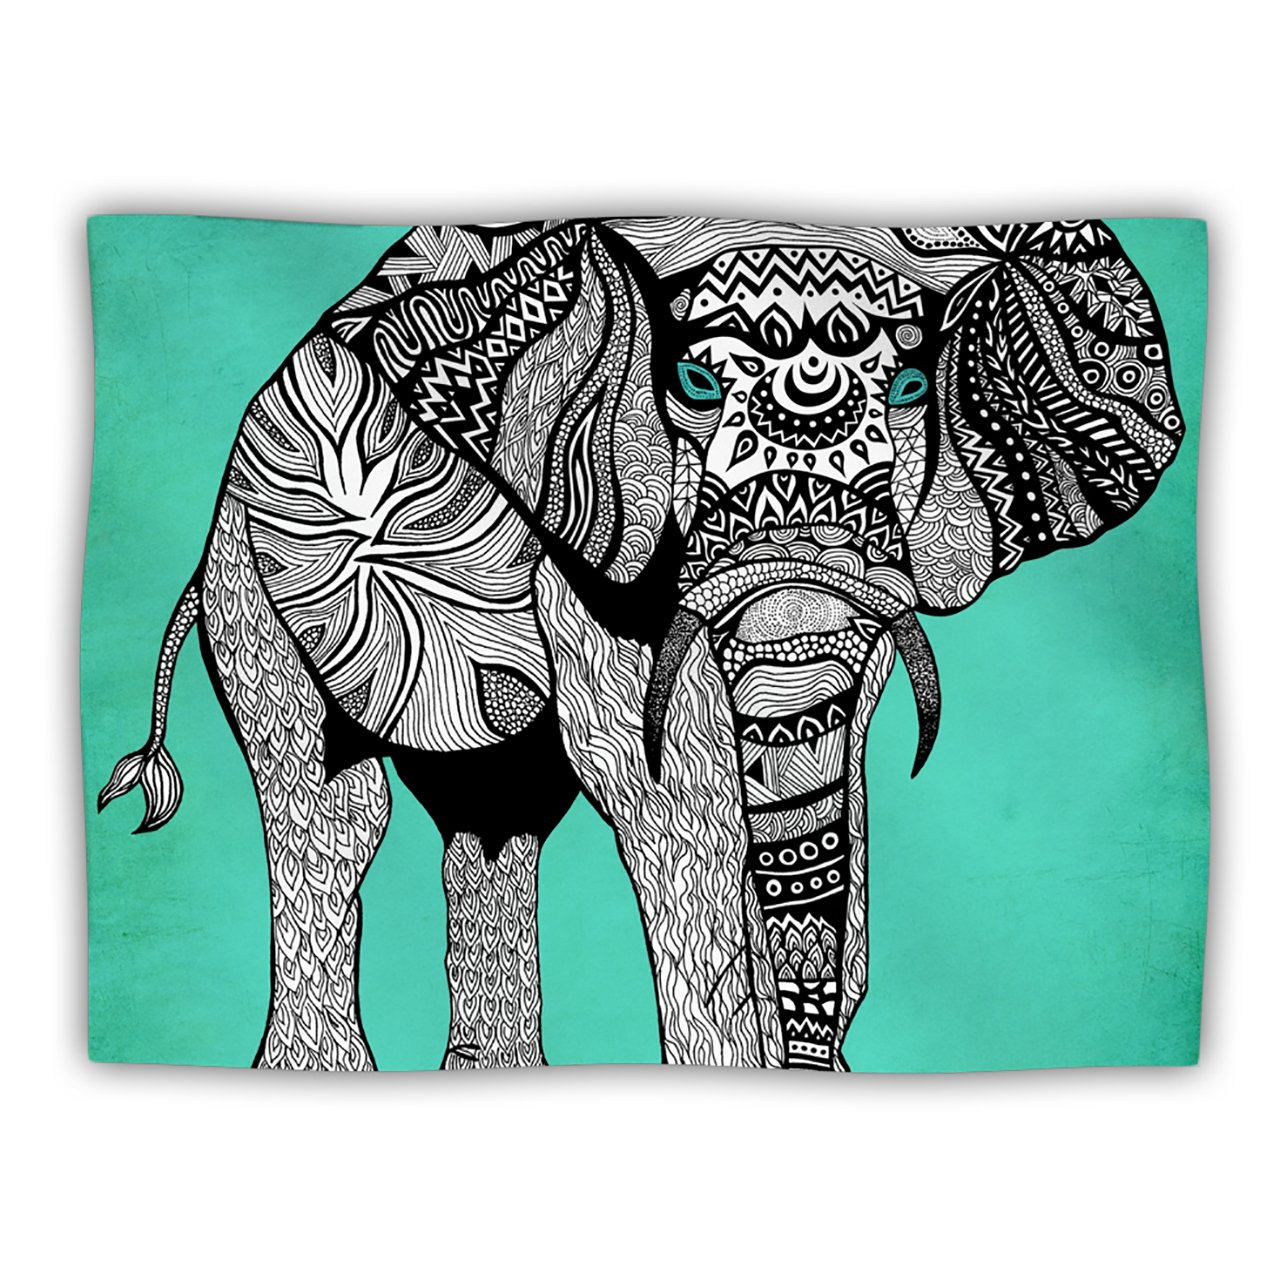 Kess InHouse Pom Graphic Design Elephant of Namibia color Pet Dog Blanket, 60 by 50-Inch